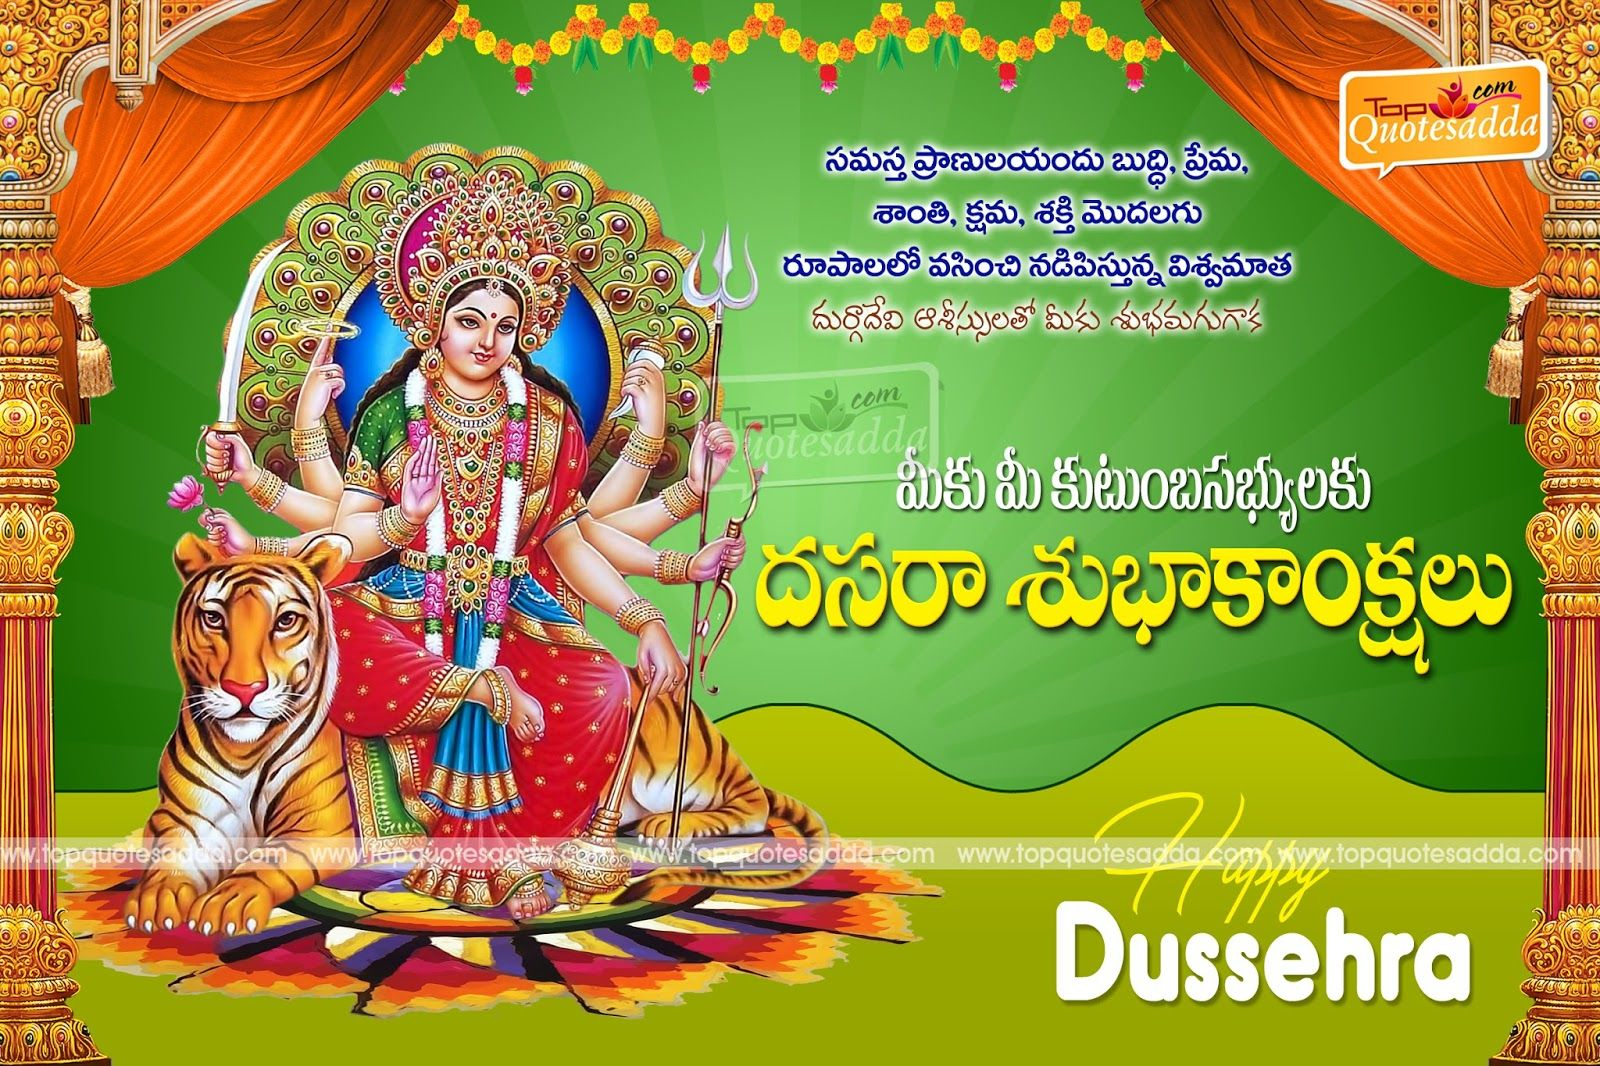 Happy dussehra vijaya dashami telugu wishes quotes greetings happy dussehra vijaya dashami telugu wishes quotes greetings topquotesaddag 16001066 m4hsunfo